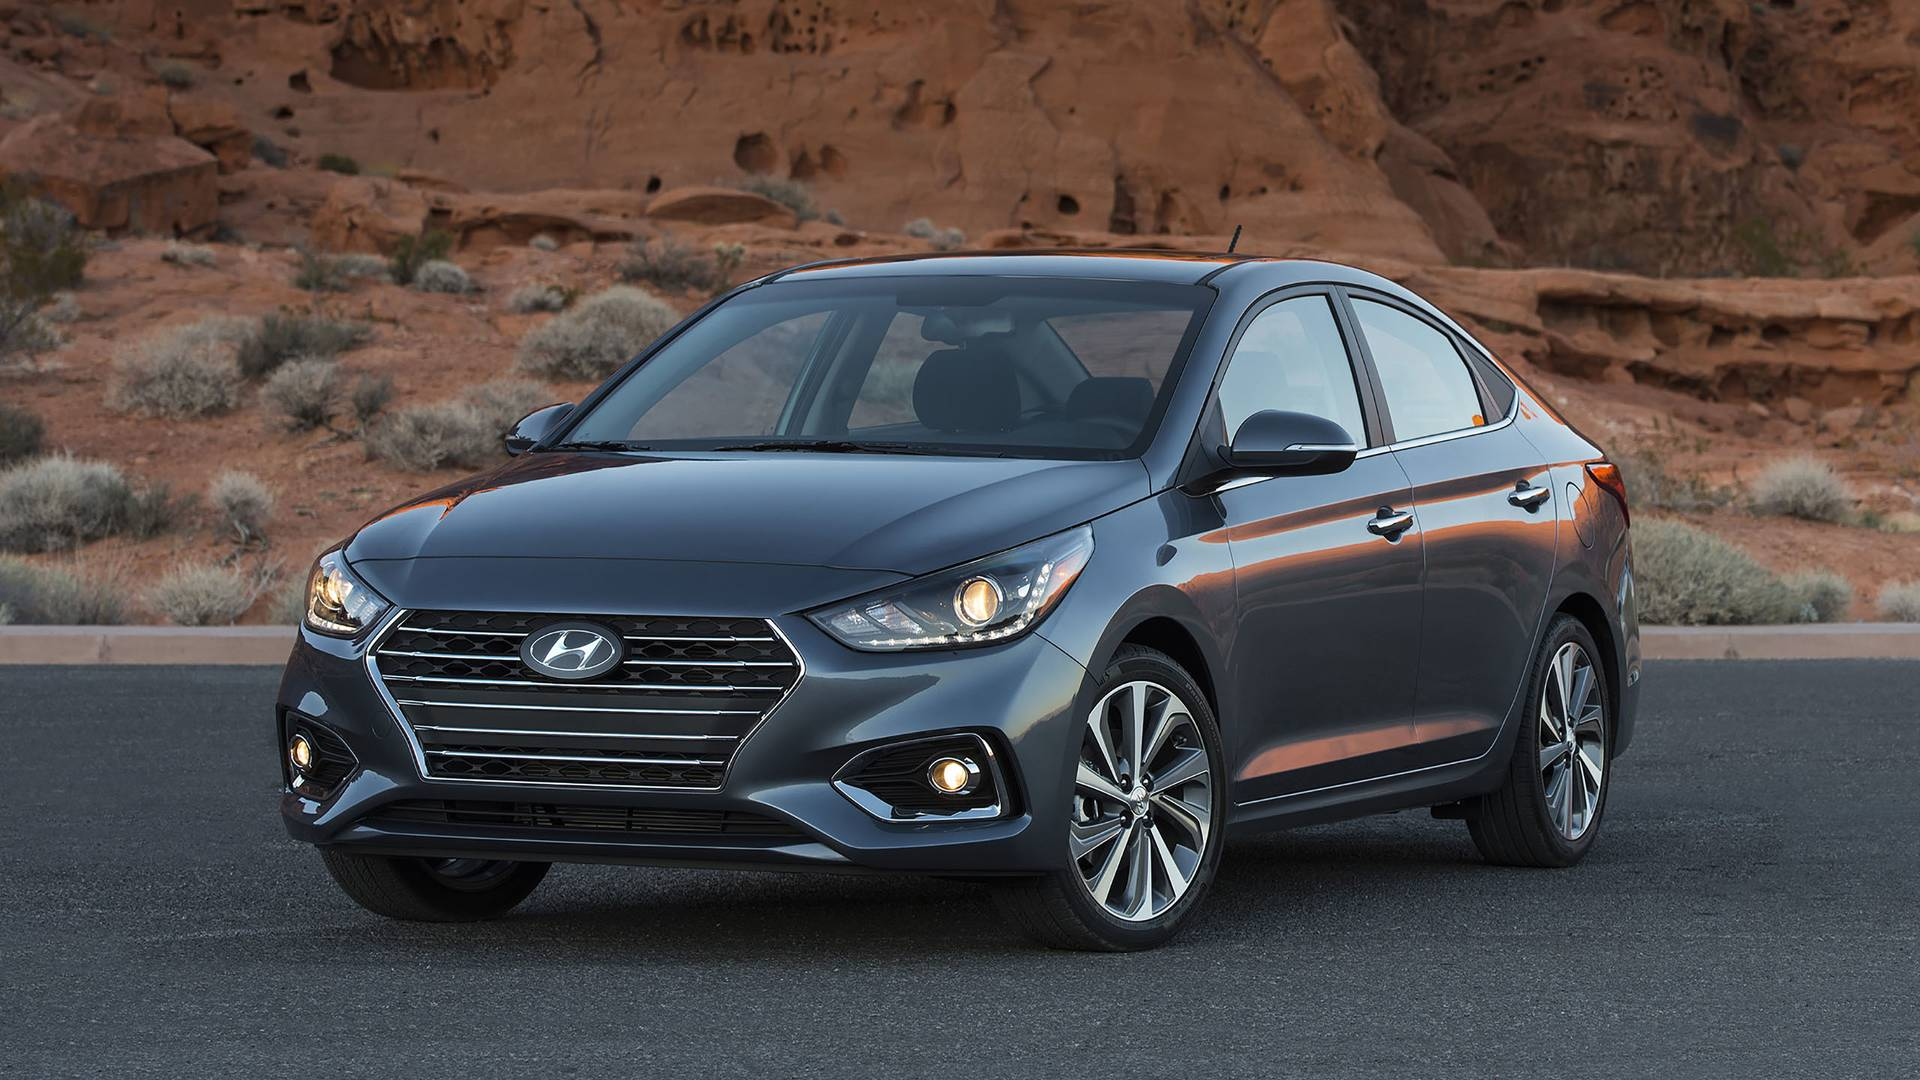 2018 hyundai accent first drive cheap refinement. Black Bedroom Furniture Sets. Home Design Ideas